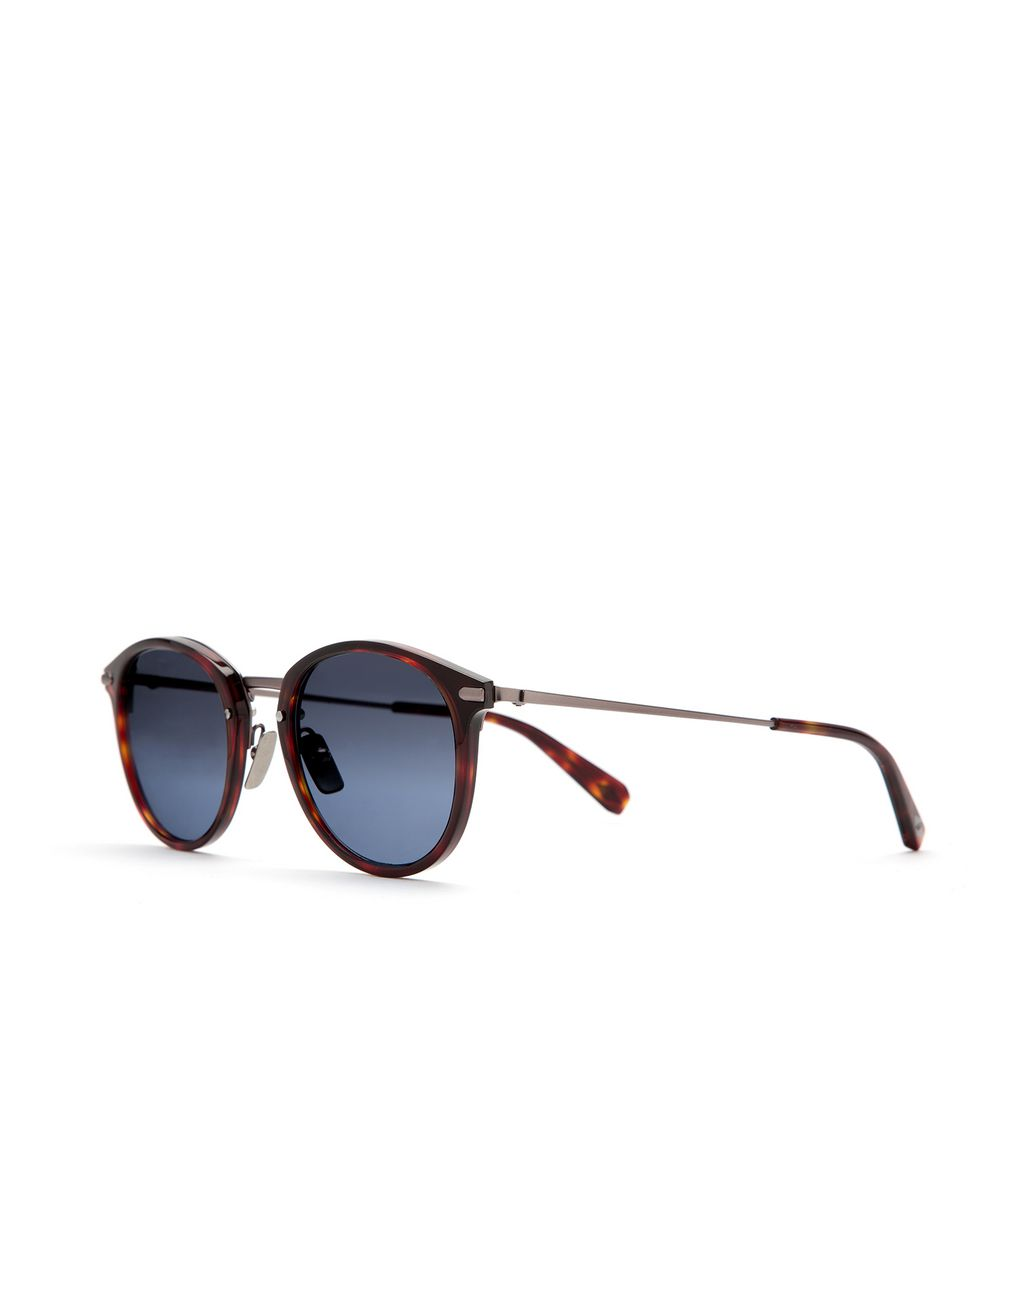 BRIONI Shiny Dark Havana Sunglasses with Silver Gradient Lenses Sunglasses Man r